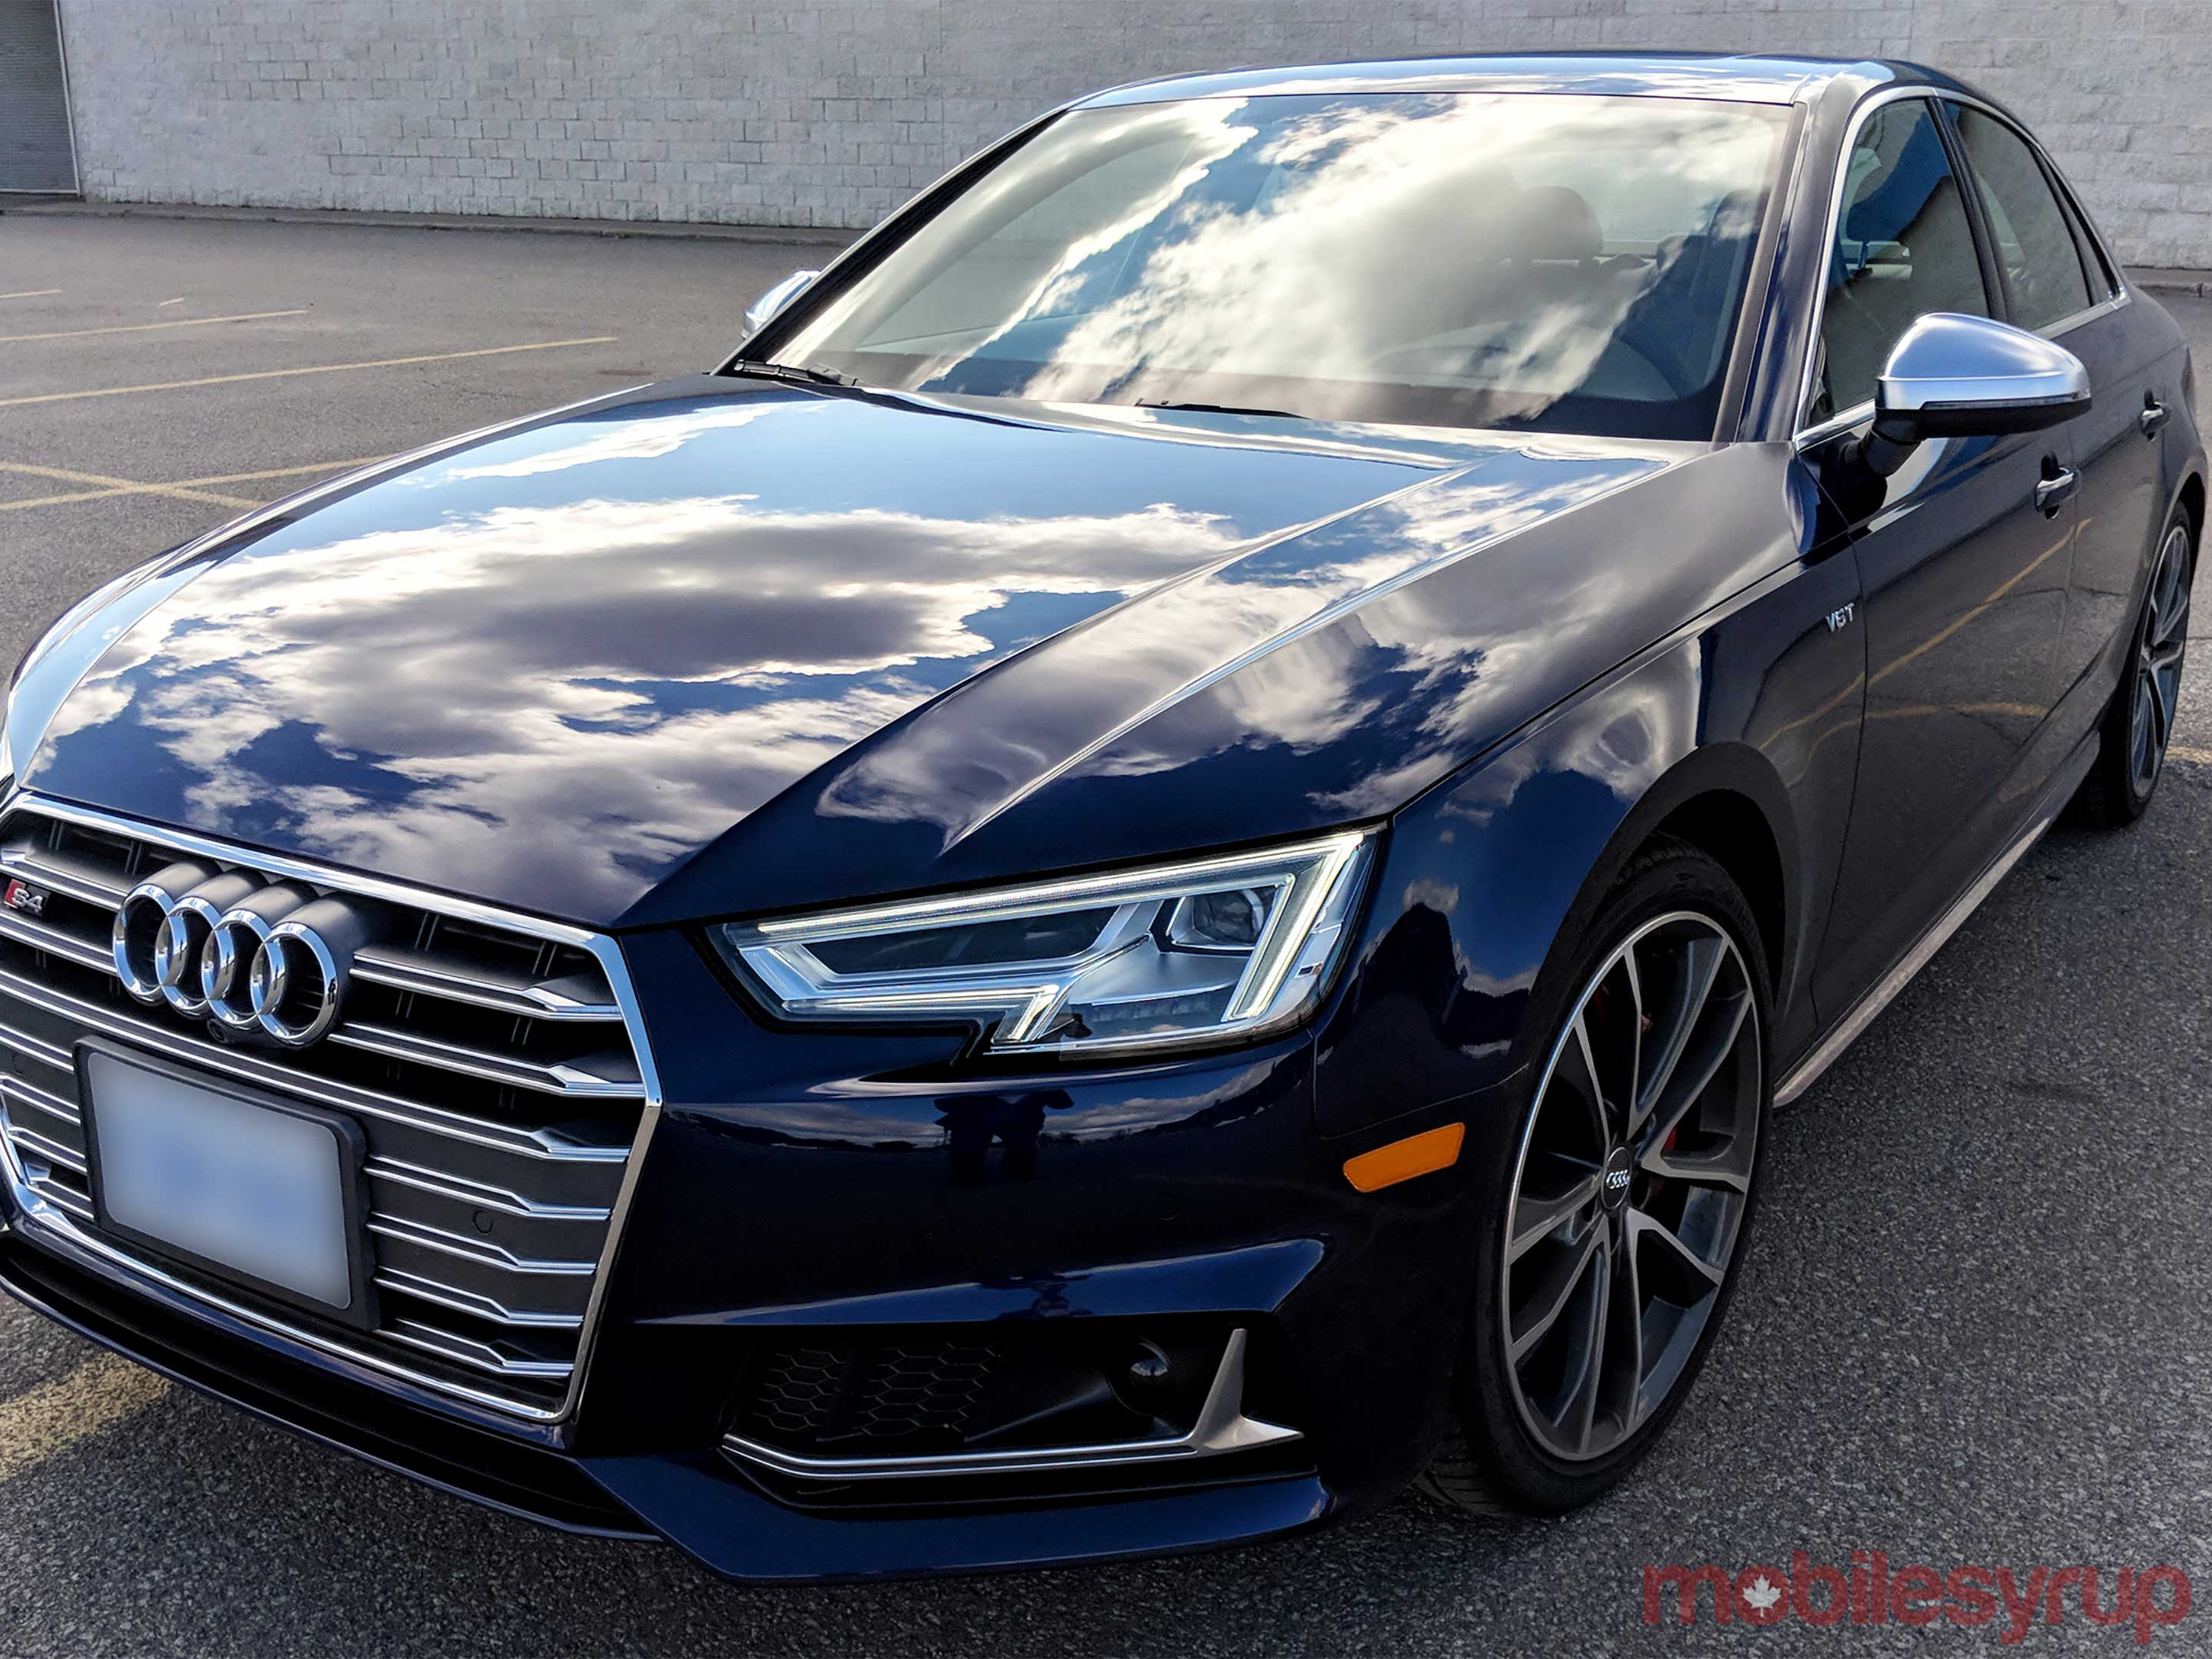 2018 Audi MMI System Review: Turning a corner